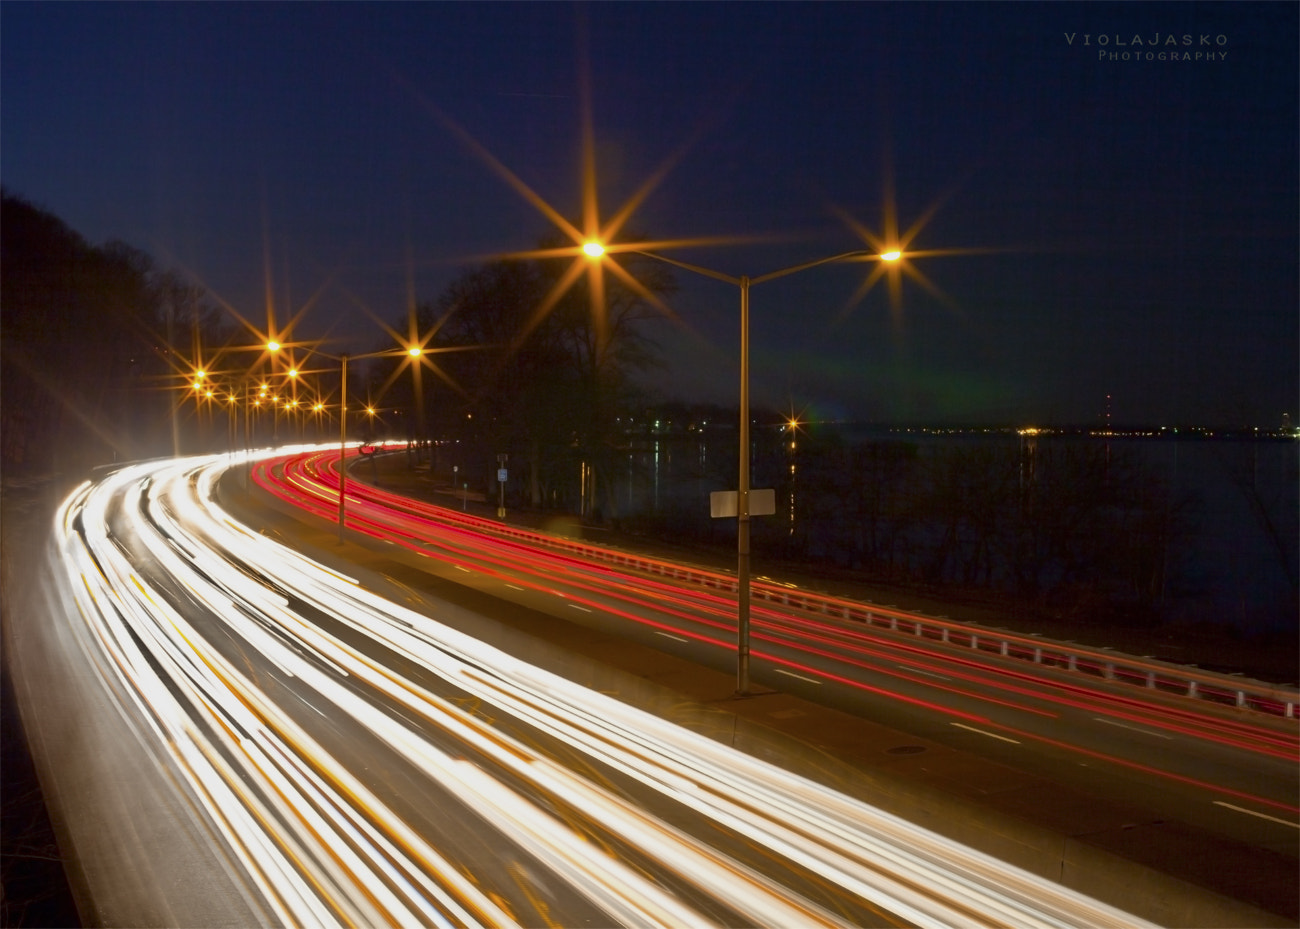 Photograph Following the Speed by Viola Jasko on 500px